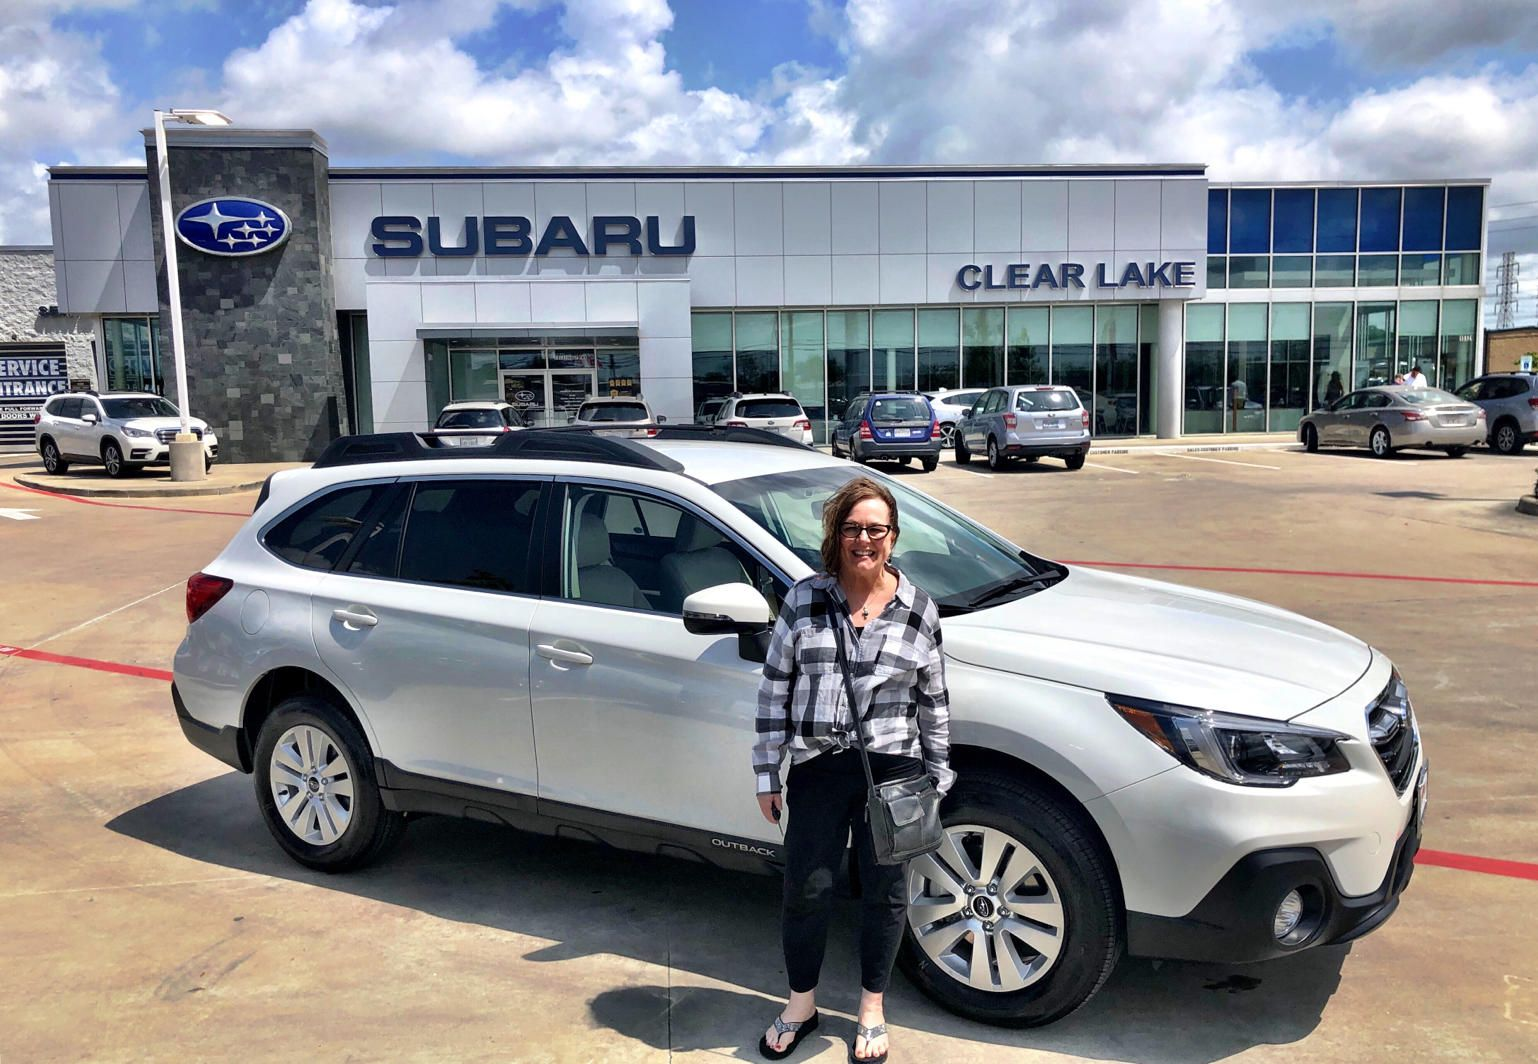 Congrats On Experiencing The Teamgillmanadvantage At Subaru Of Clear Lake We Hope You Love Your New 2019 Subaru Outback Subaru Outback Clear Lake Outback